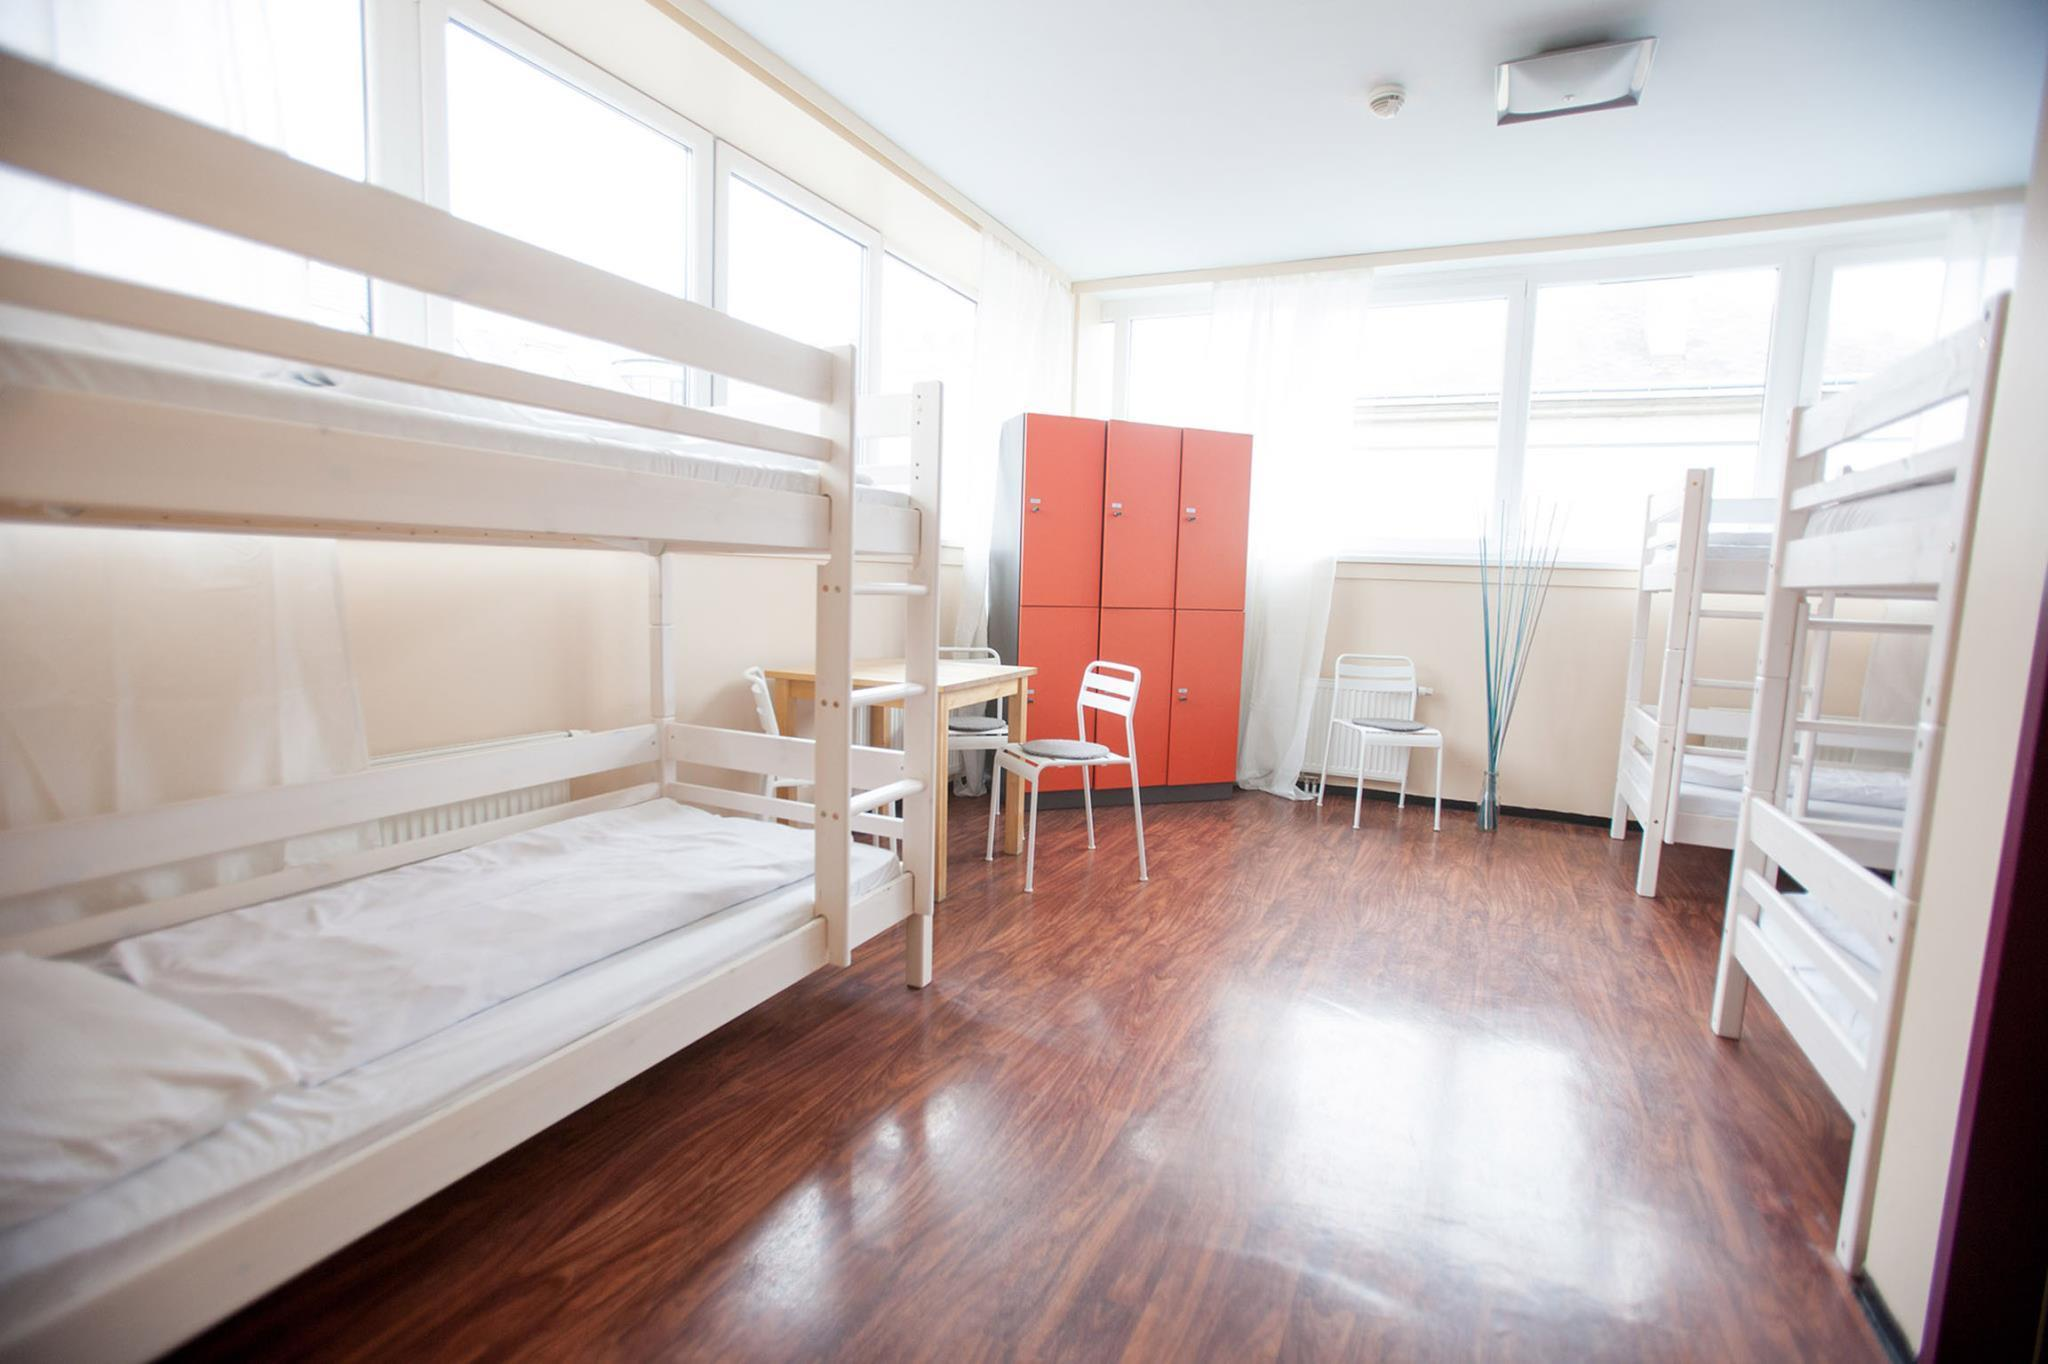 1 Wombats City Hostel Vienna at the